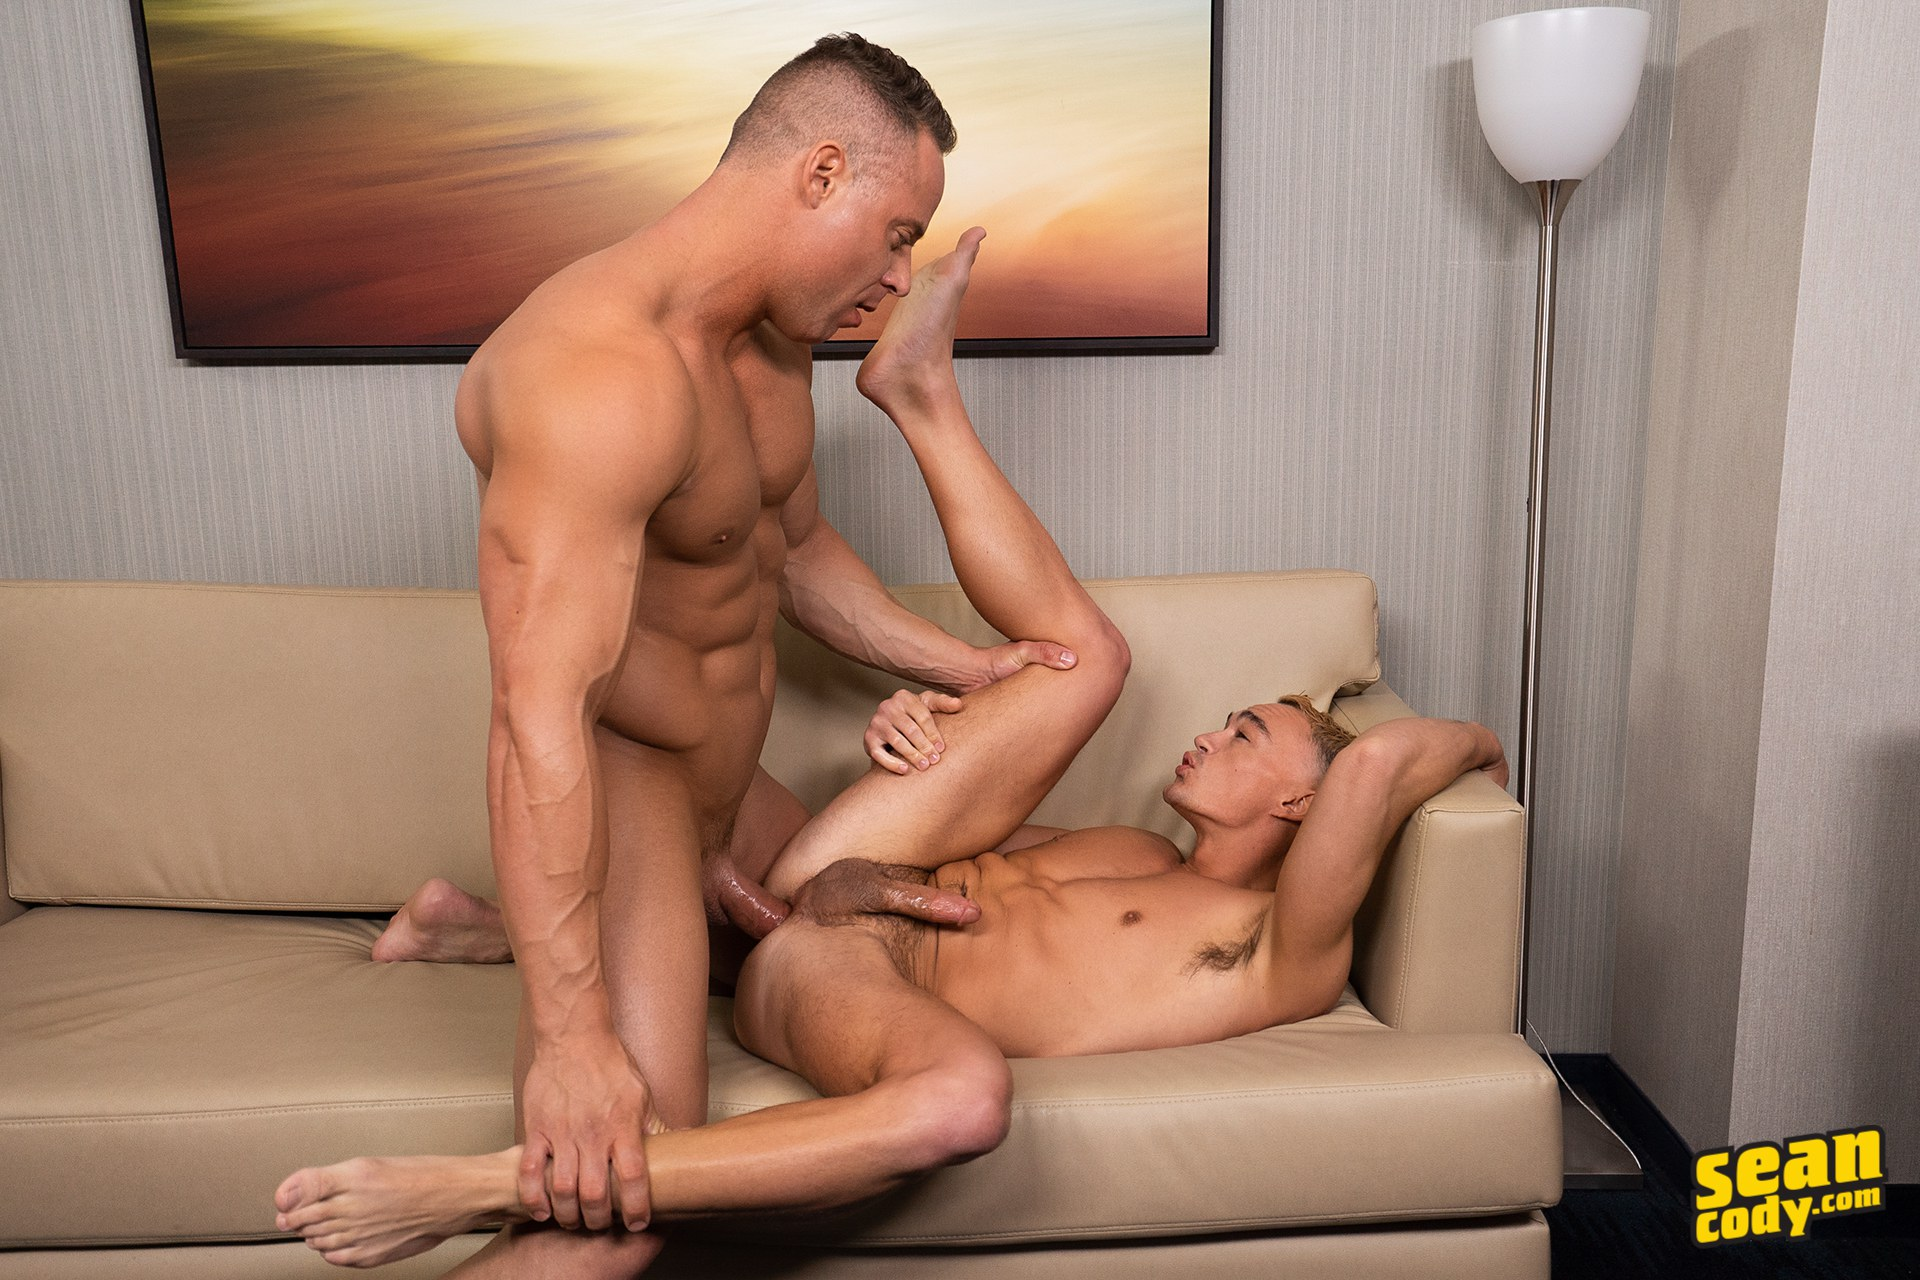 Big gay hunk fucking his little stud buddy